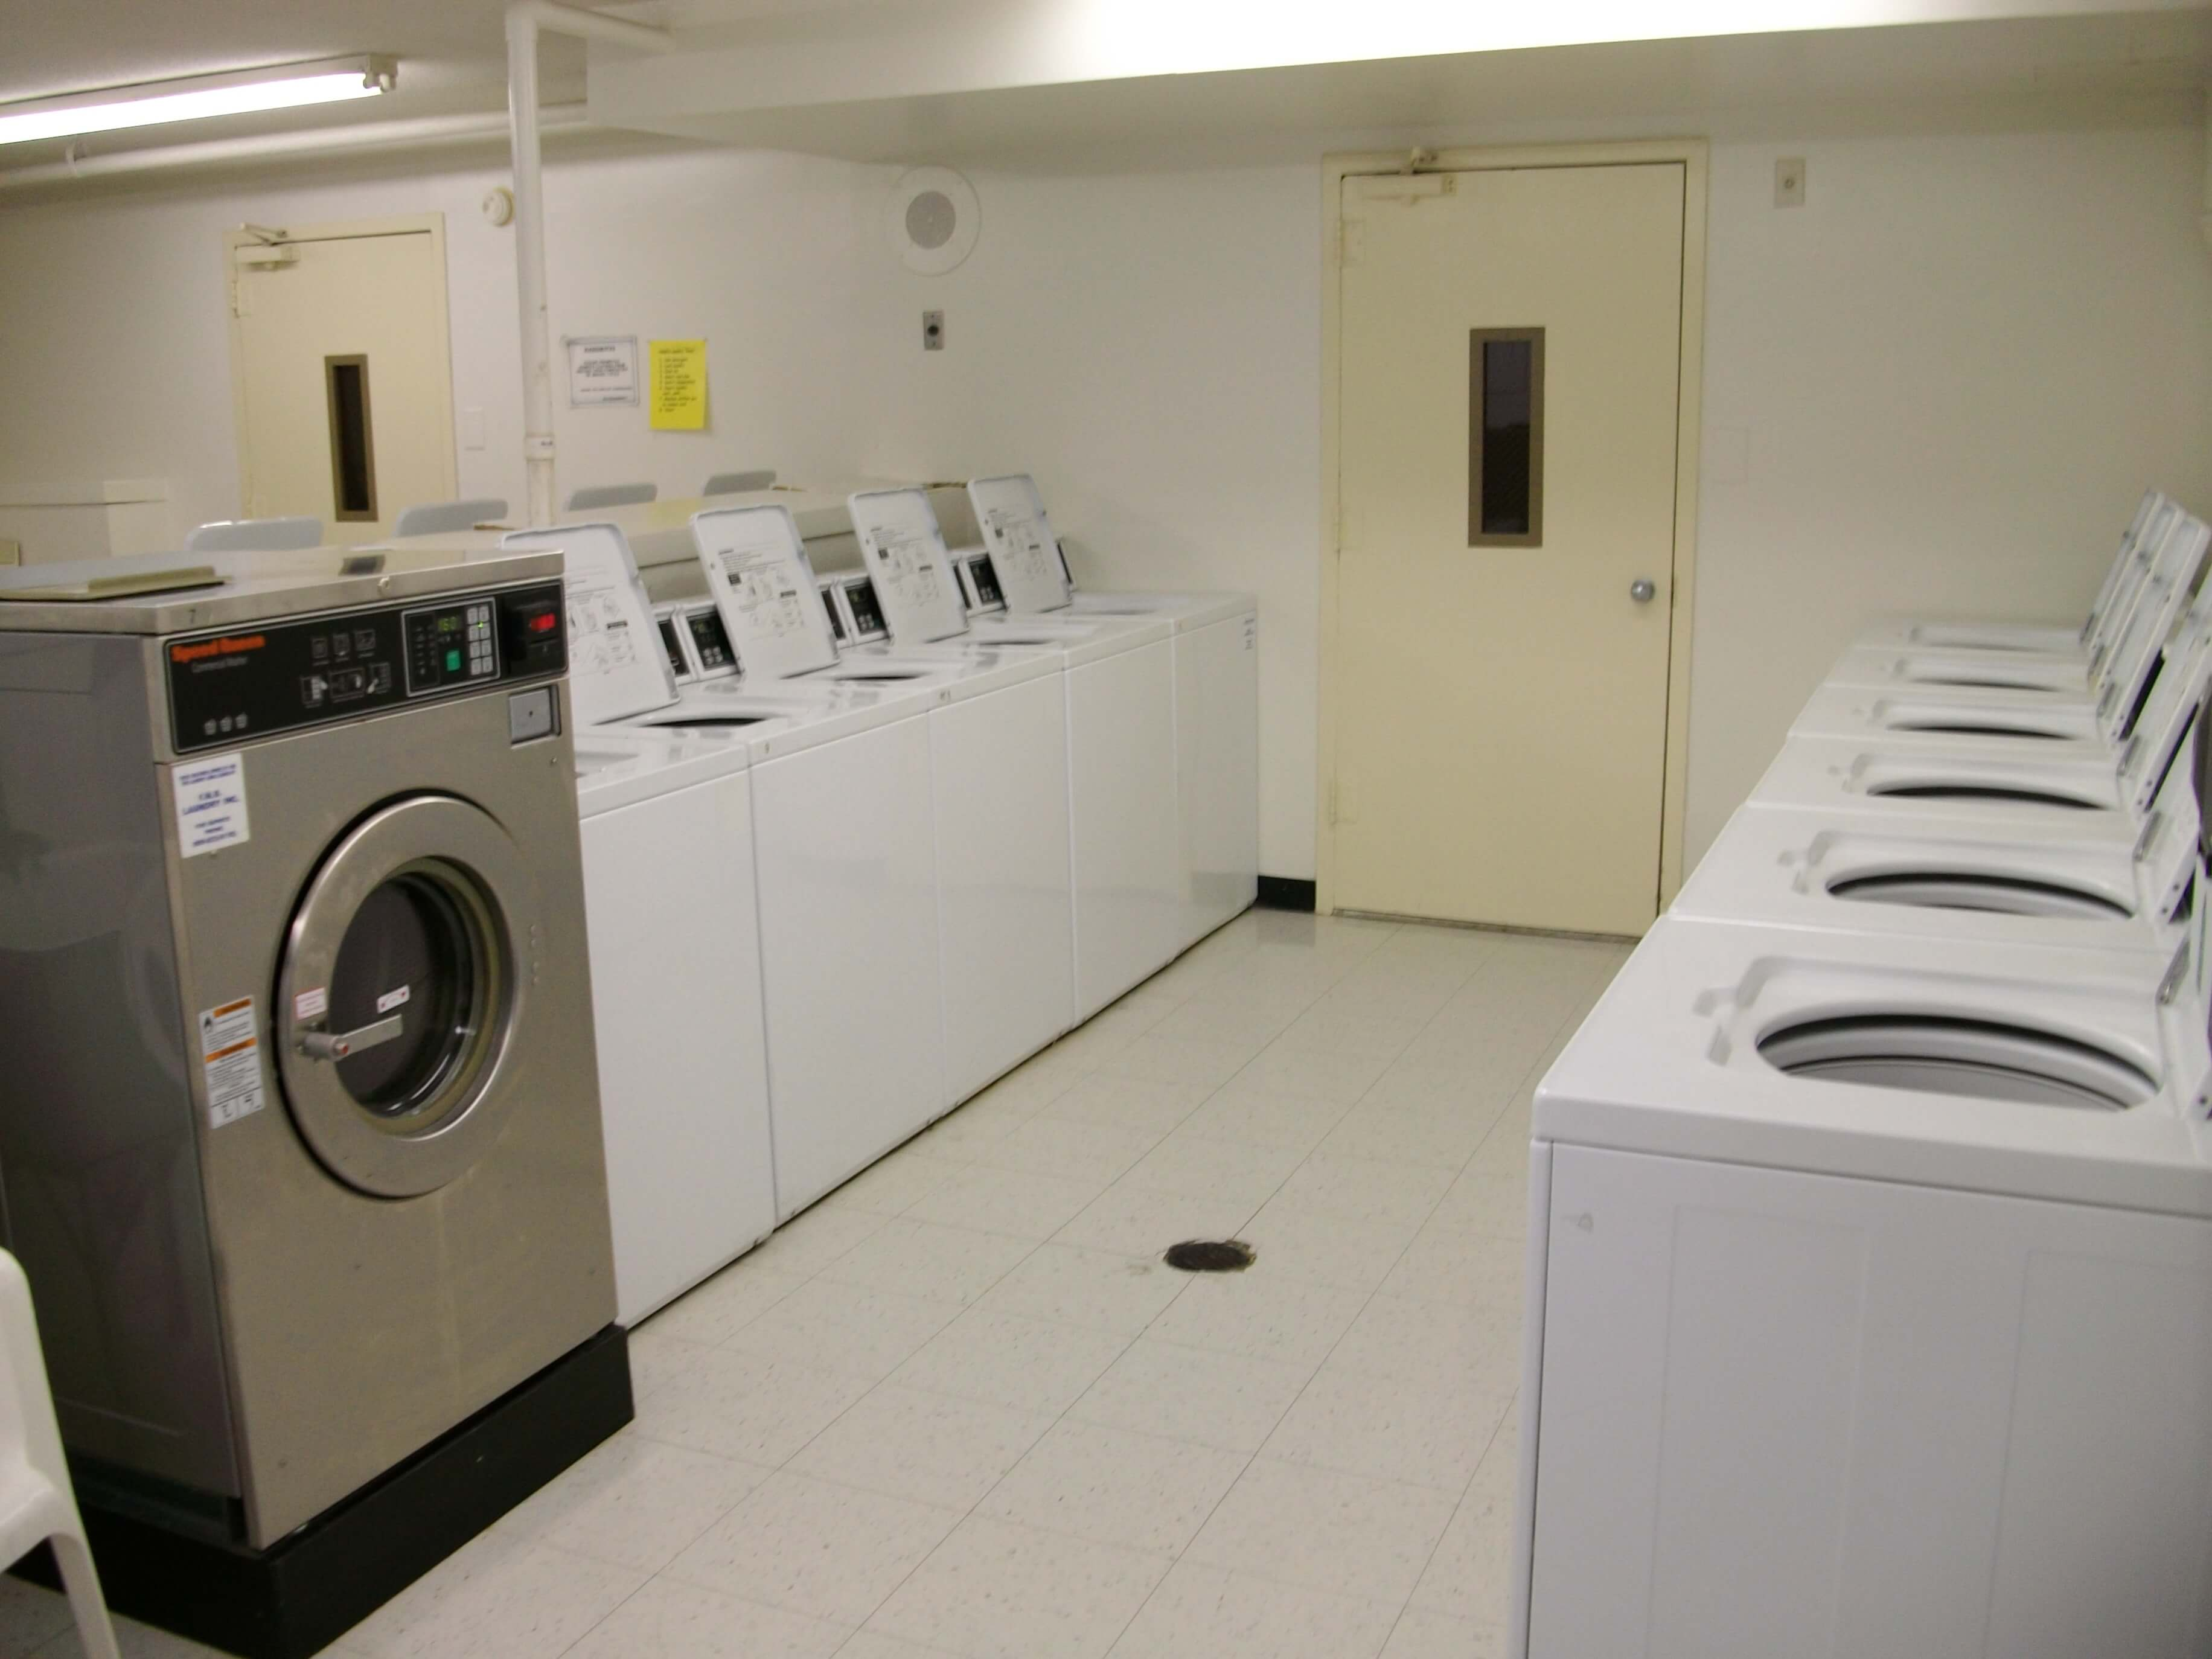 Reasons to Offer Laundry Services At Your Business